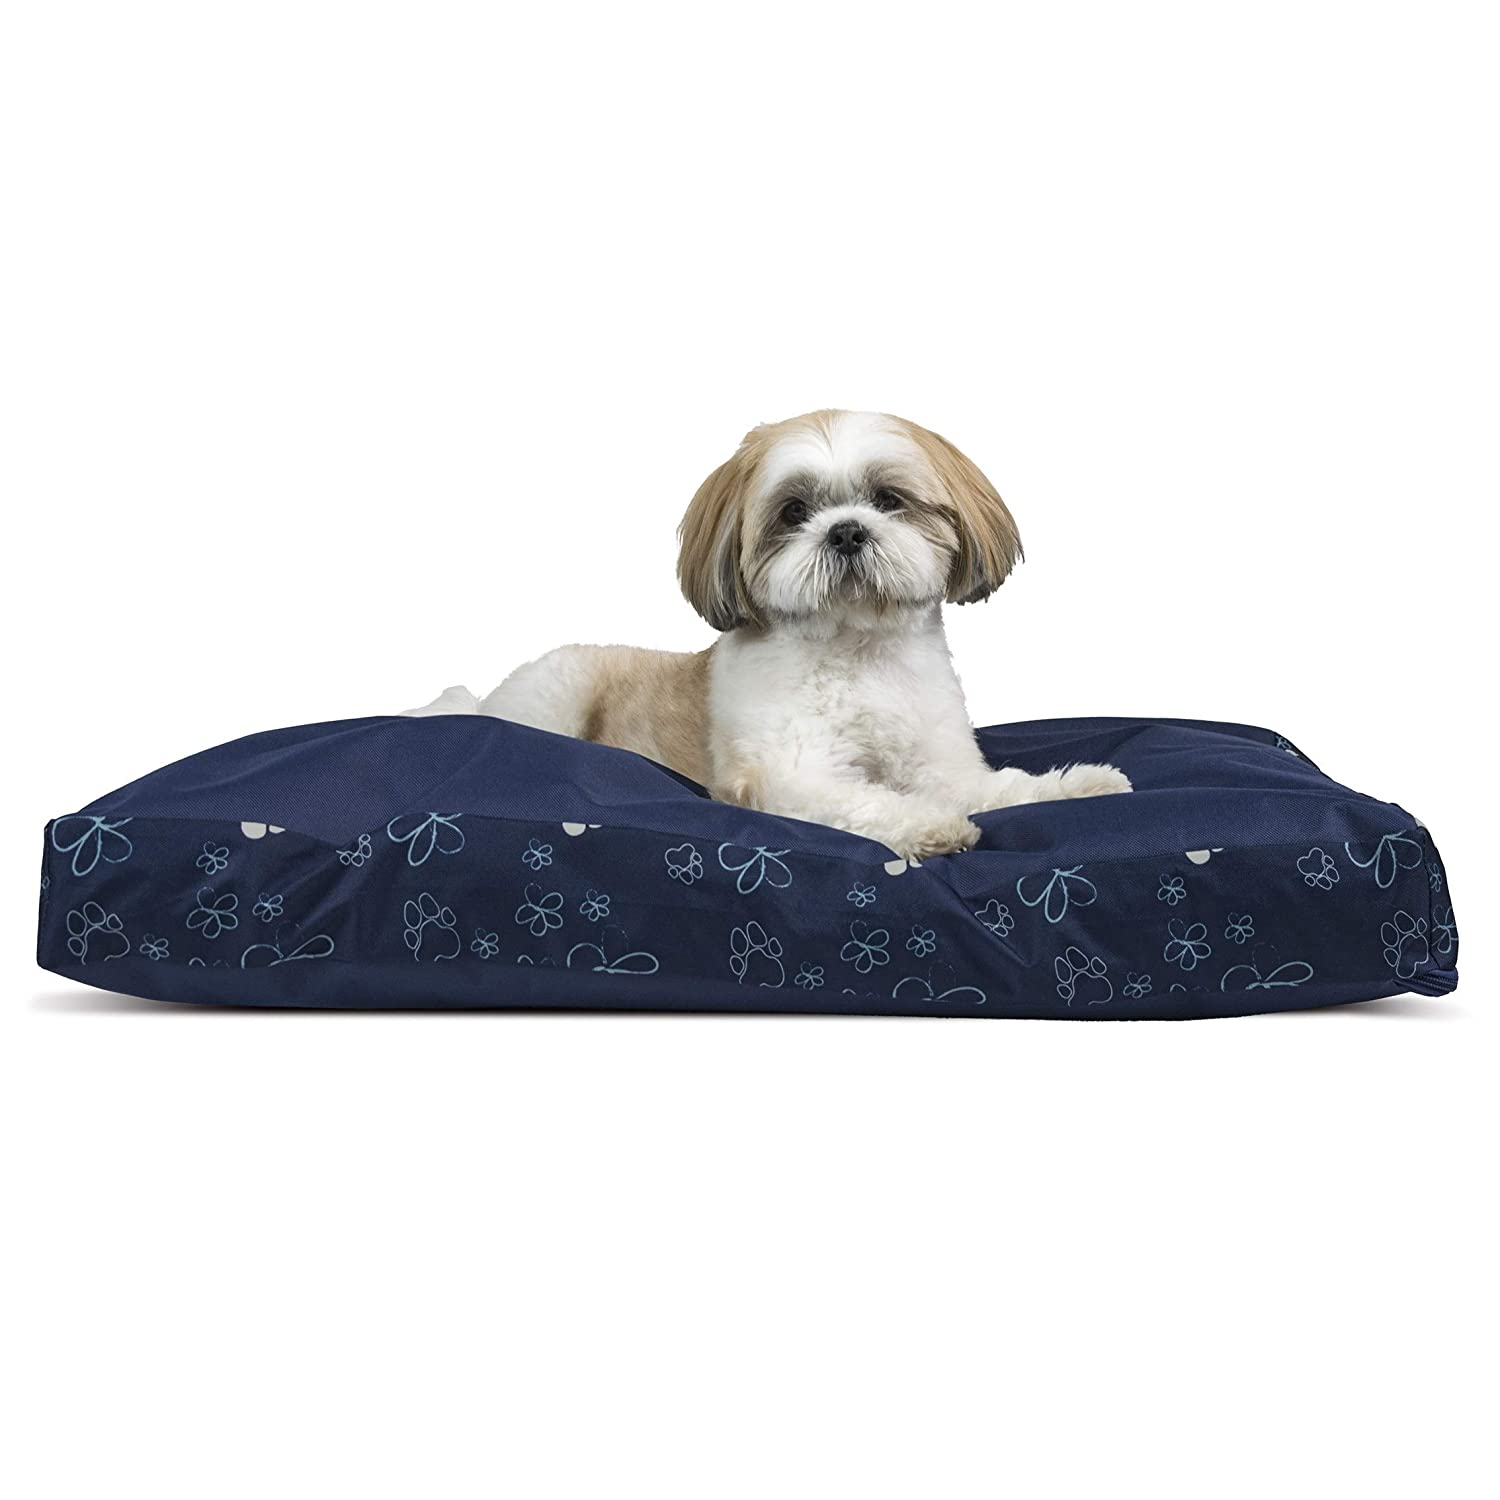 Furhaven Pet Dog Bed - Deluxe Water-Resistant Indoor-Outdoor Garden Pillow Cushion Traditional Mattress Pet Bed with Removable Cover for Dogs and Cats, Lapis Blue, Medium